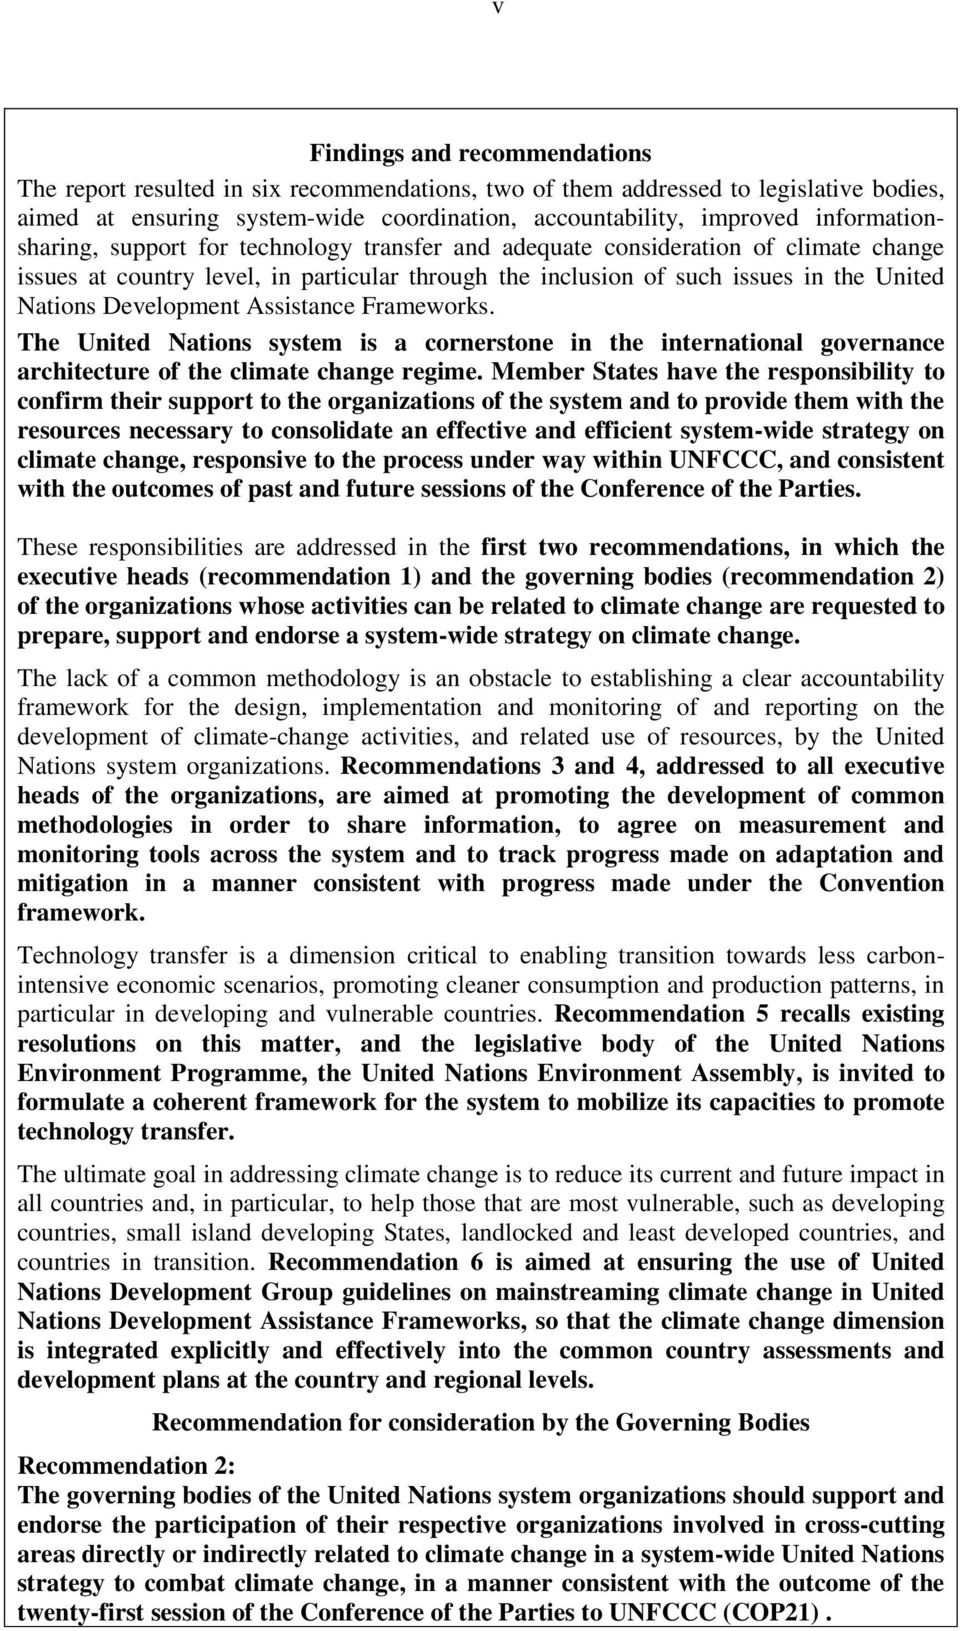 Development Assistance Frameworks. The United Nations system is a cornerstone in the international governance architecture of the climate change regime.